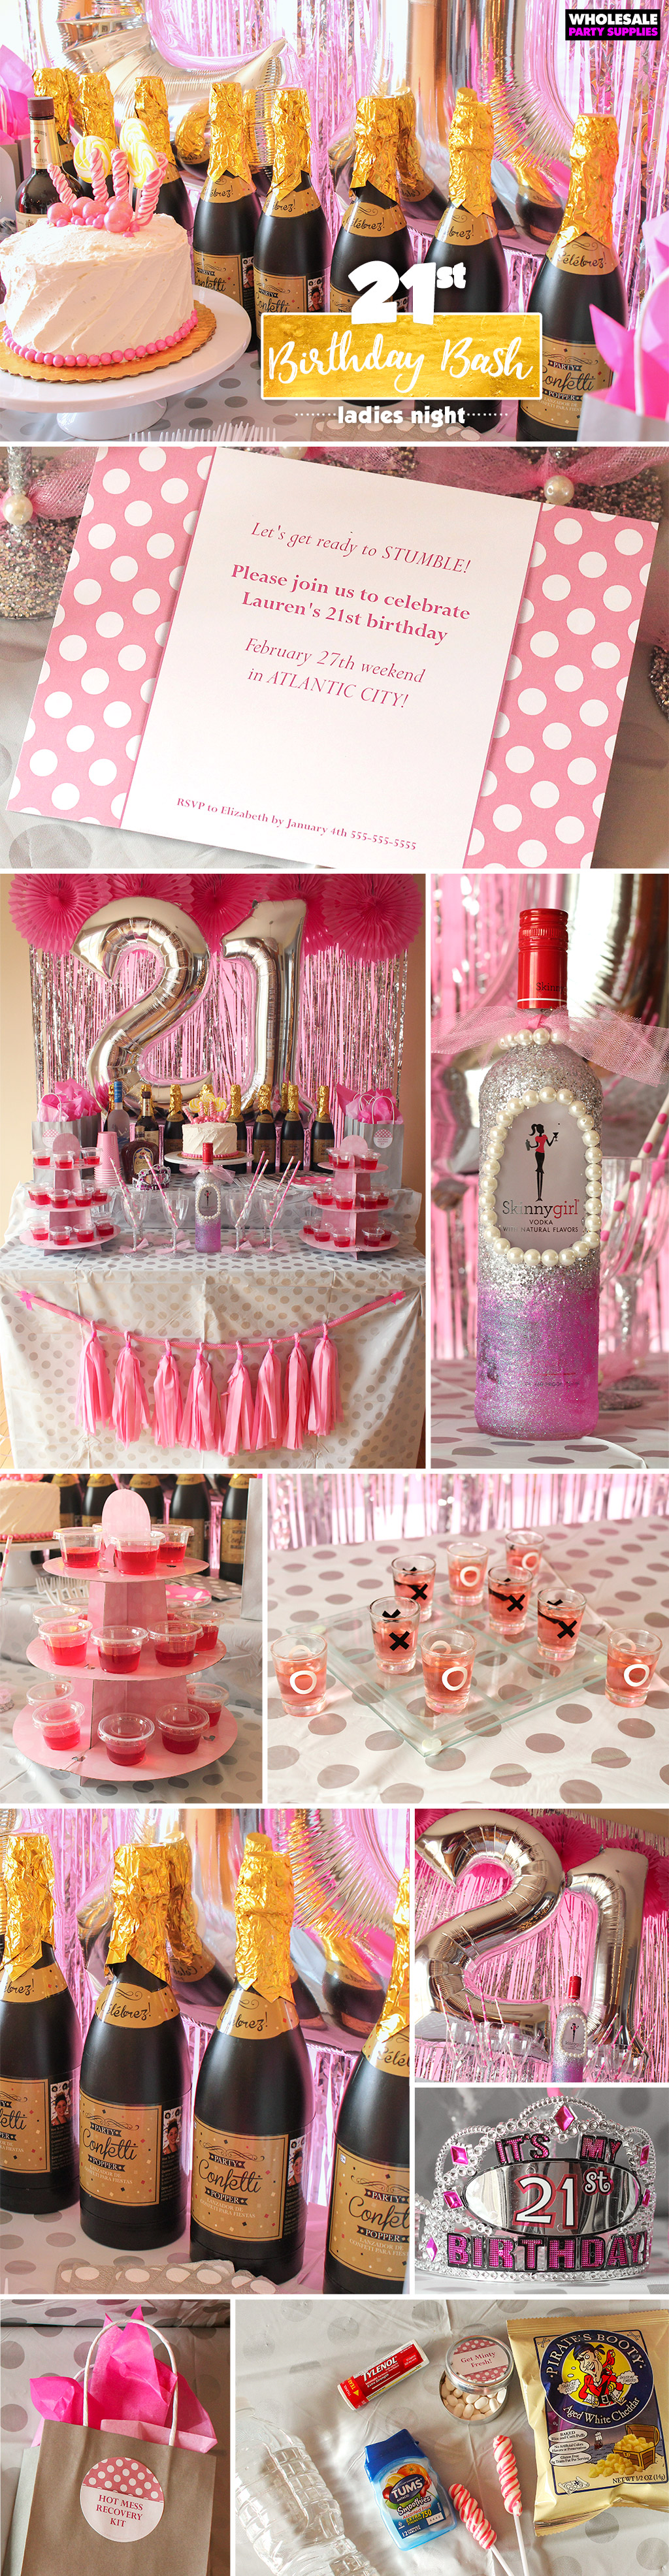 21st Birthday Bash | Party Ideas & Activities by Wholesale Party ...